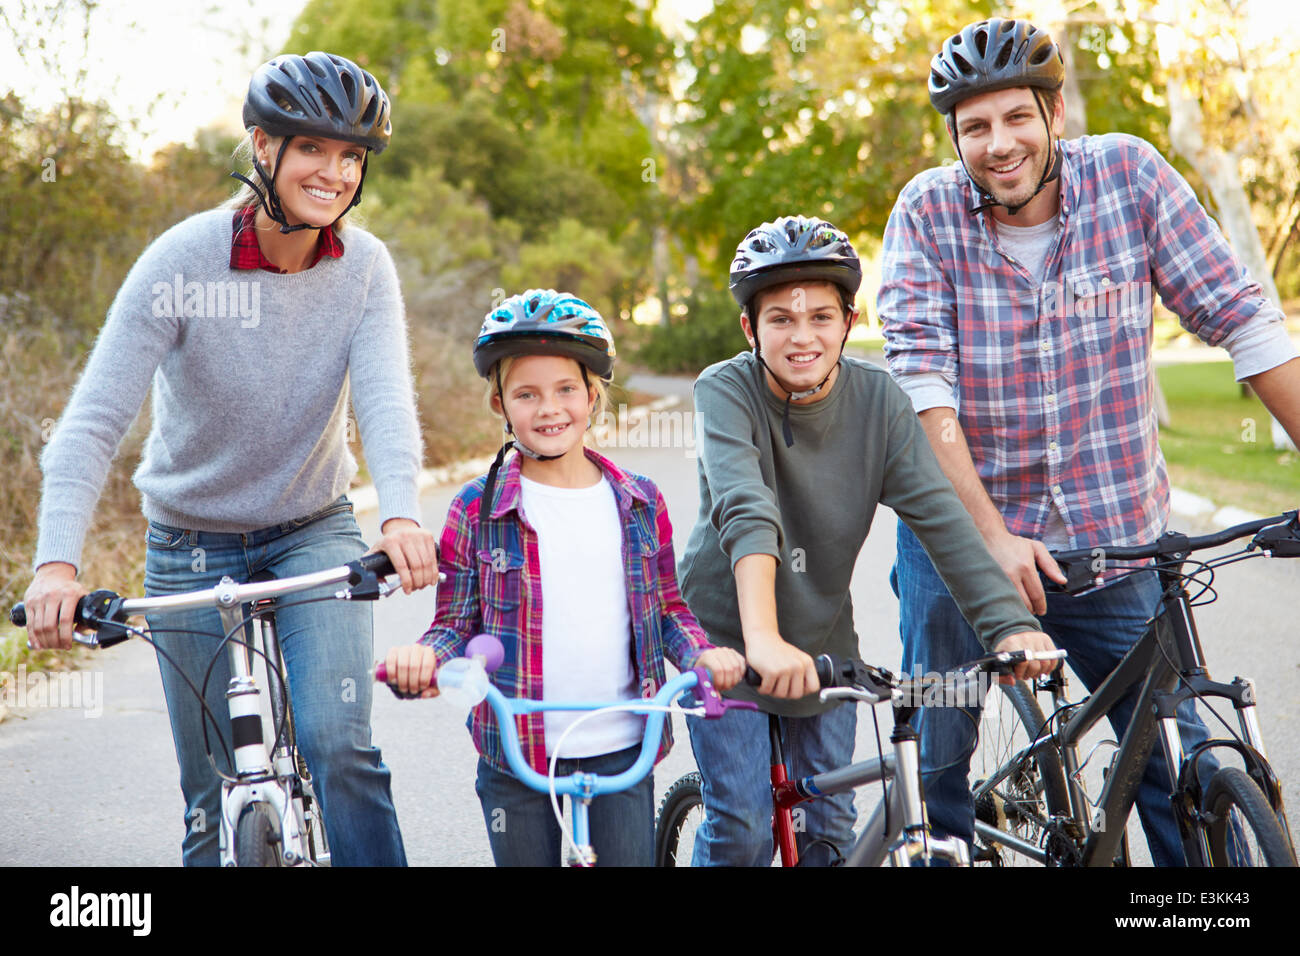 Portrait Of Family On Cycle Ride In Countryside - Stock Image